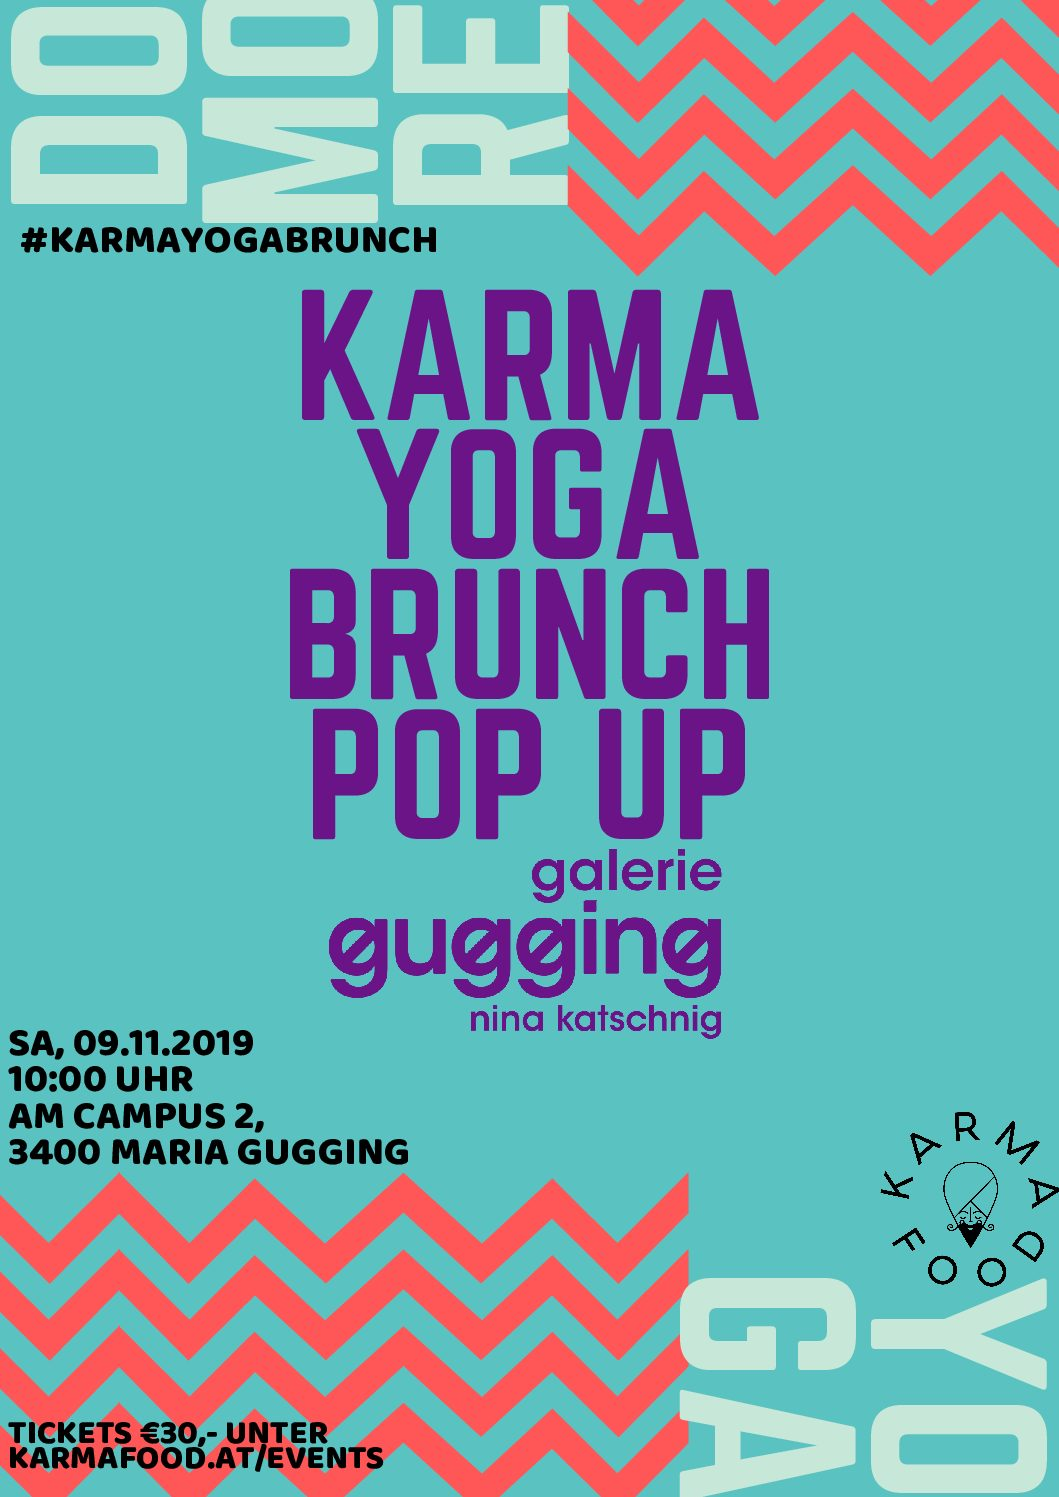 Karma Yoga Brunch Pop up @ gallery gugging